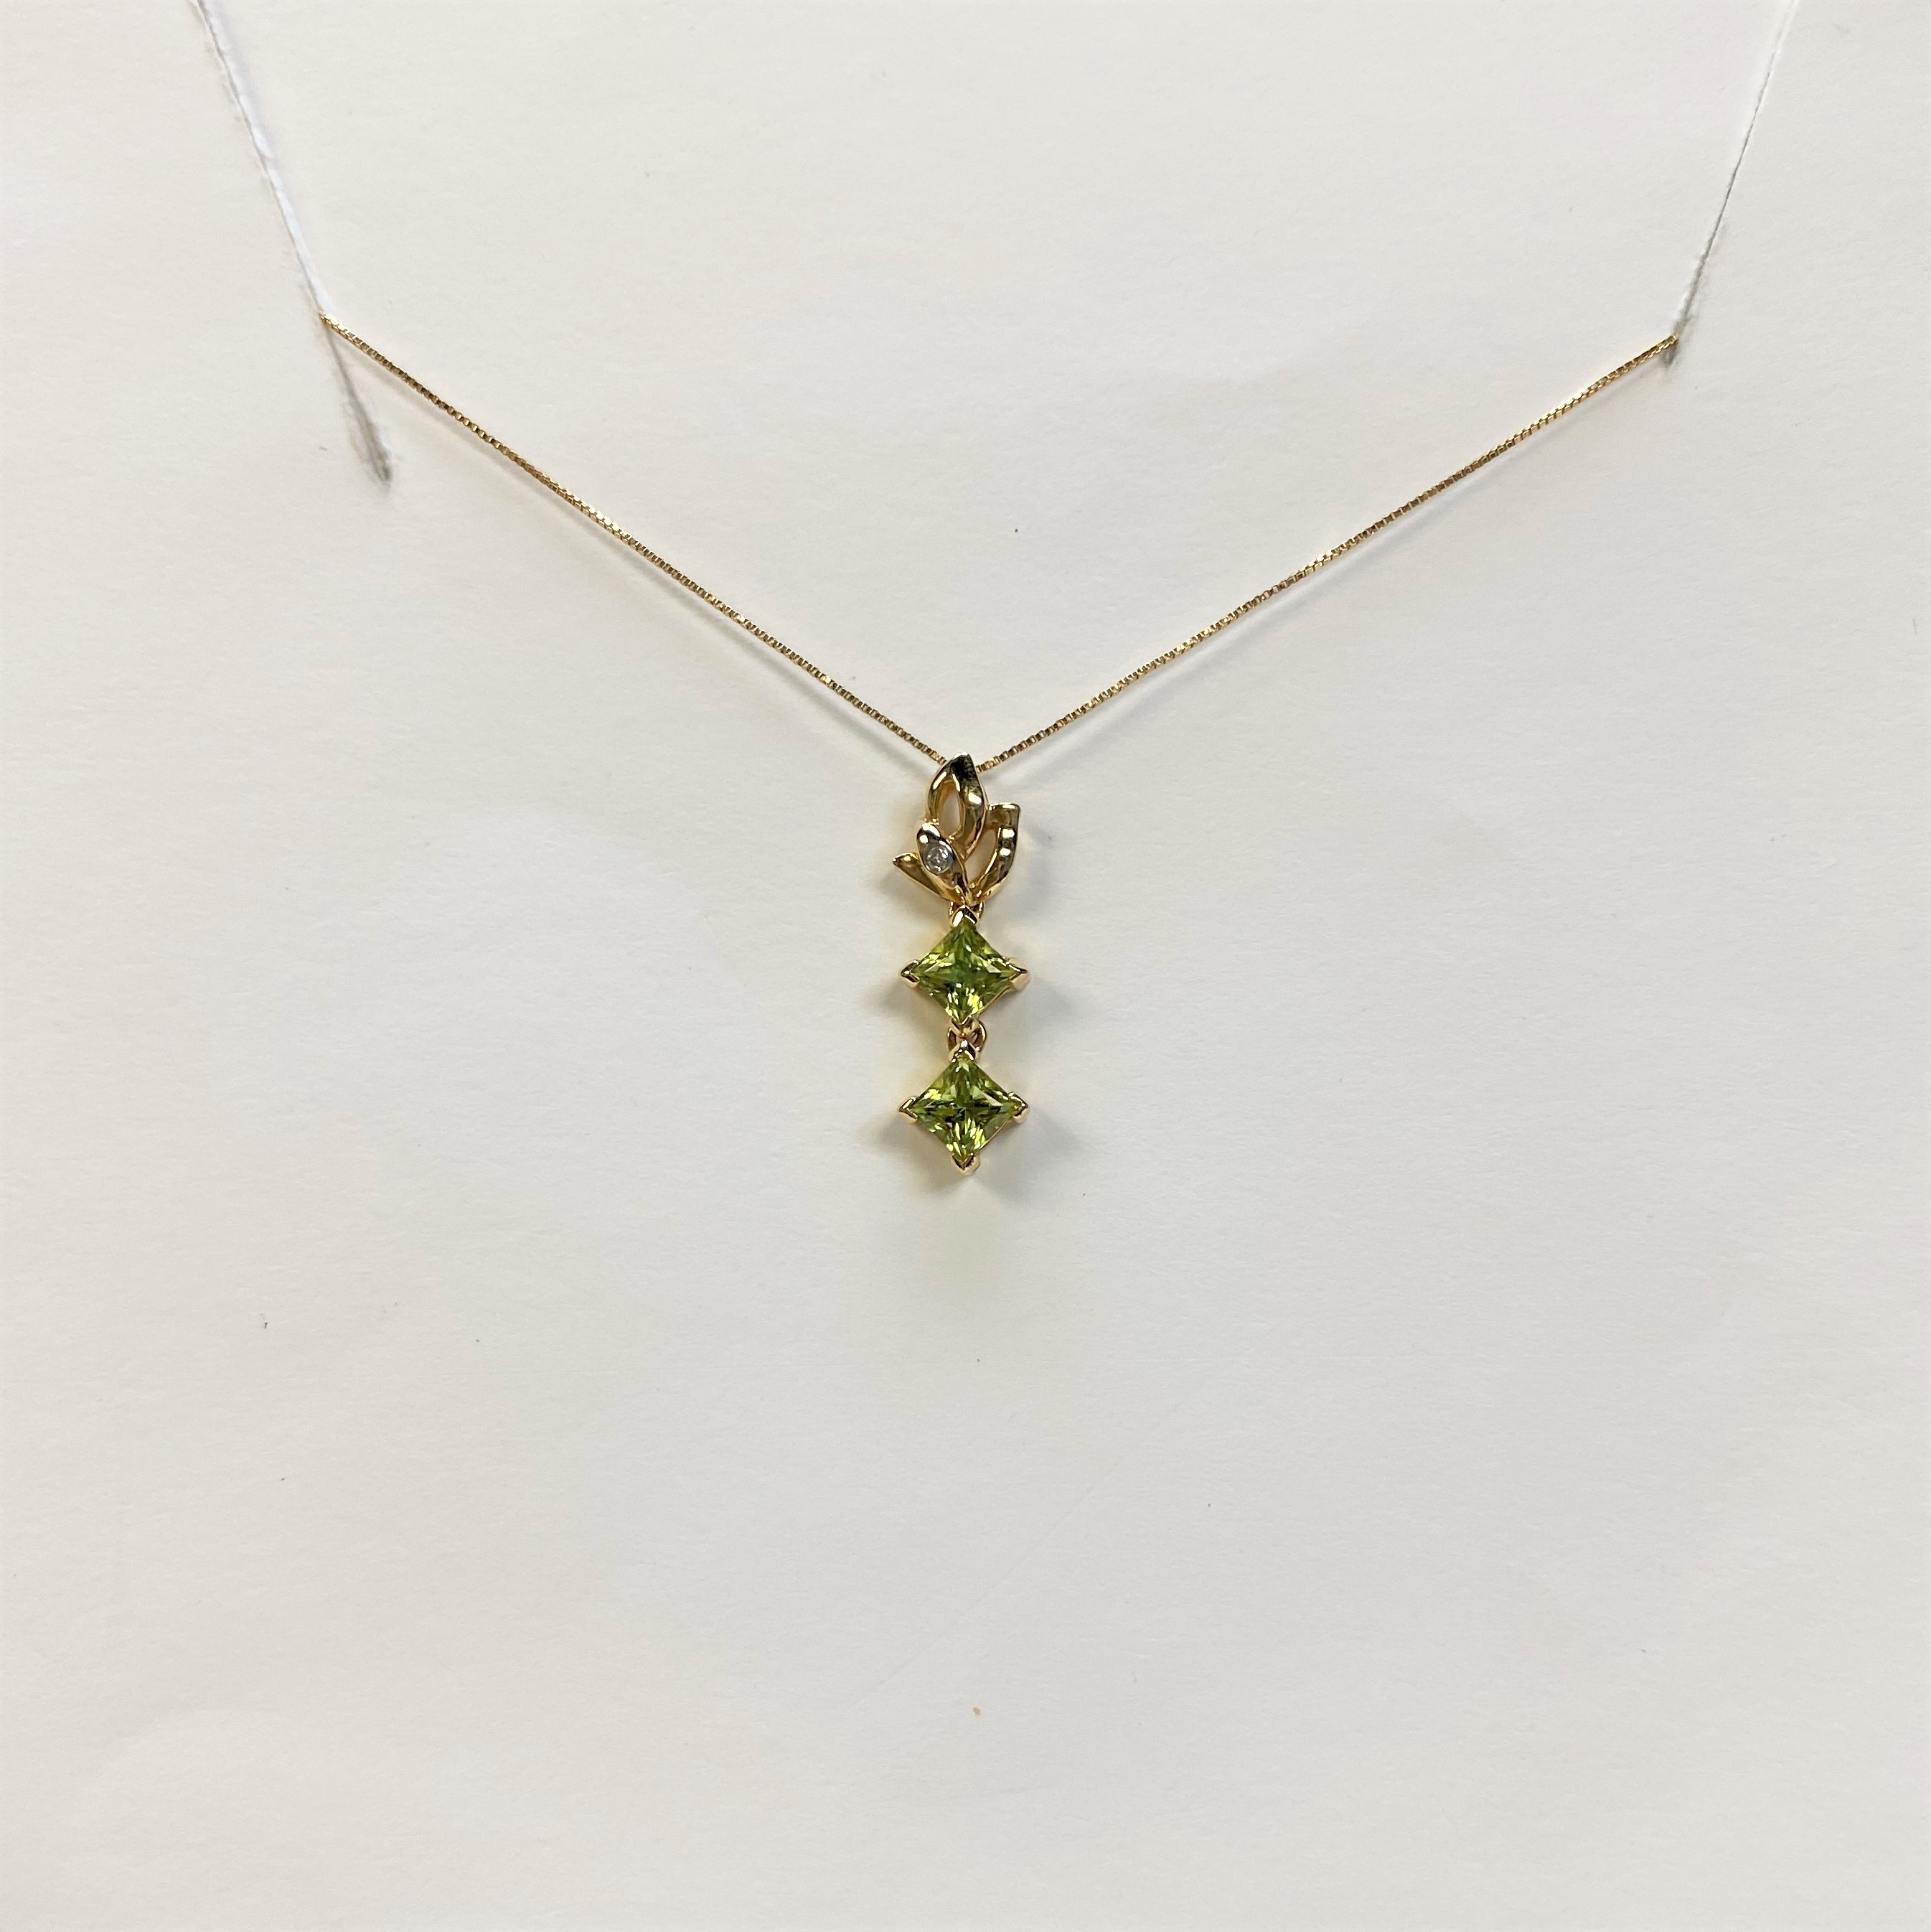 Yellow Gold Pendant With Square Cut Peridot